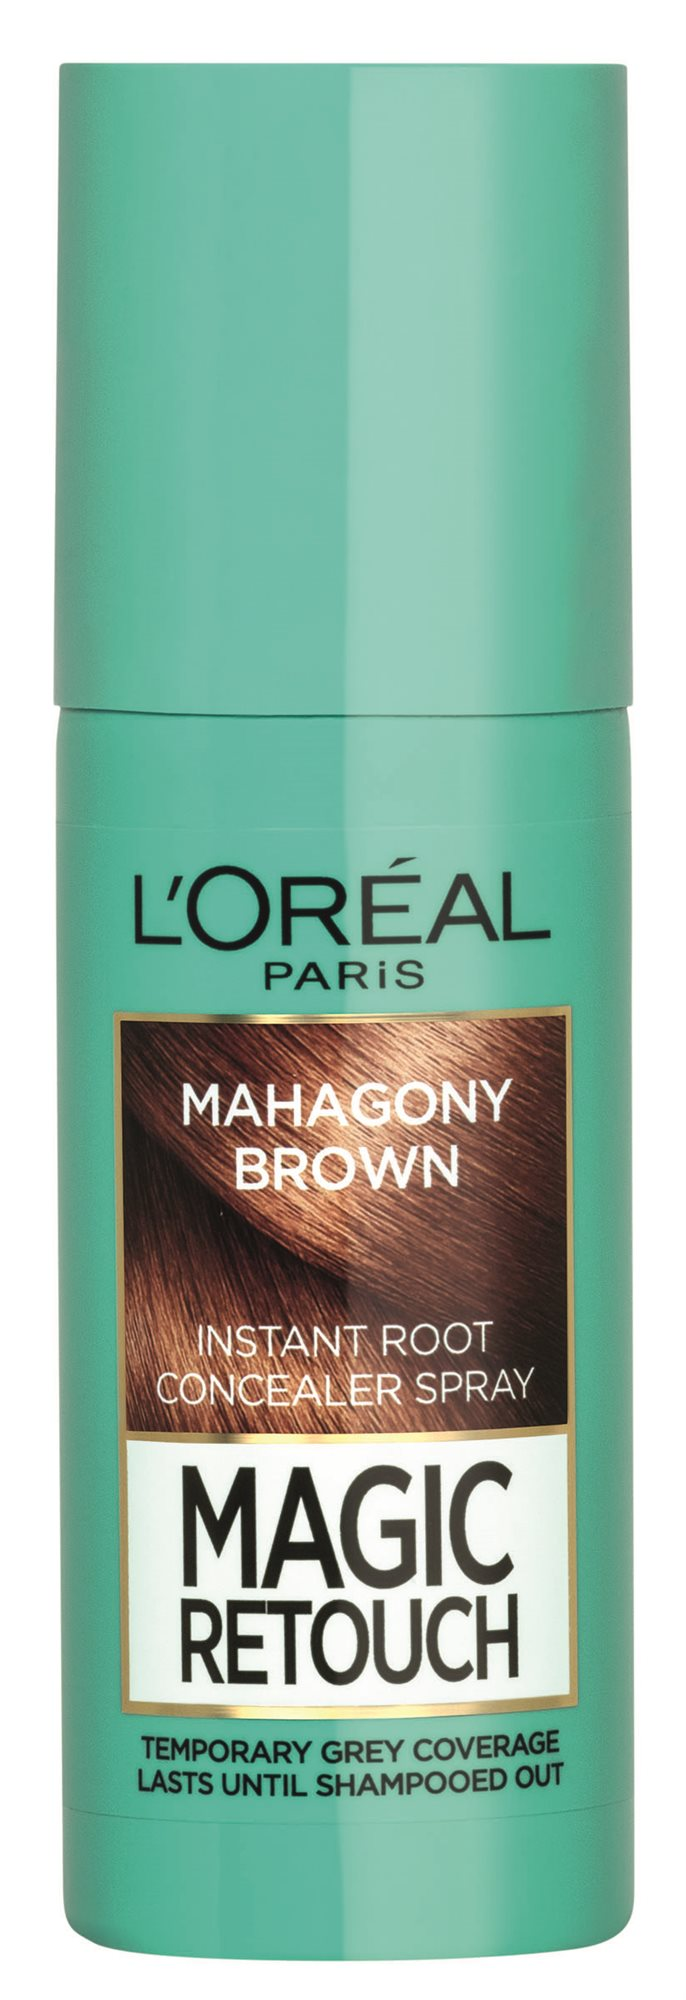 ĽORÉAL PARIS Magic Retouch 6 Mahagony Brown 75 ml